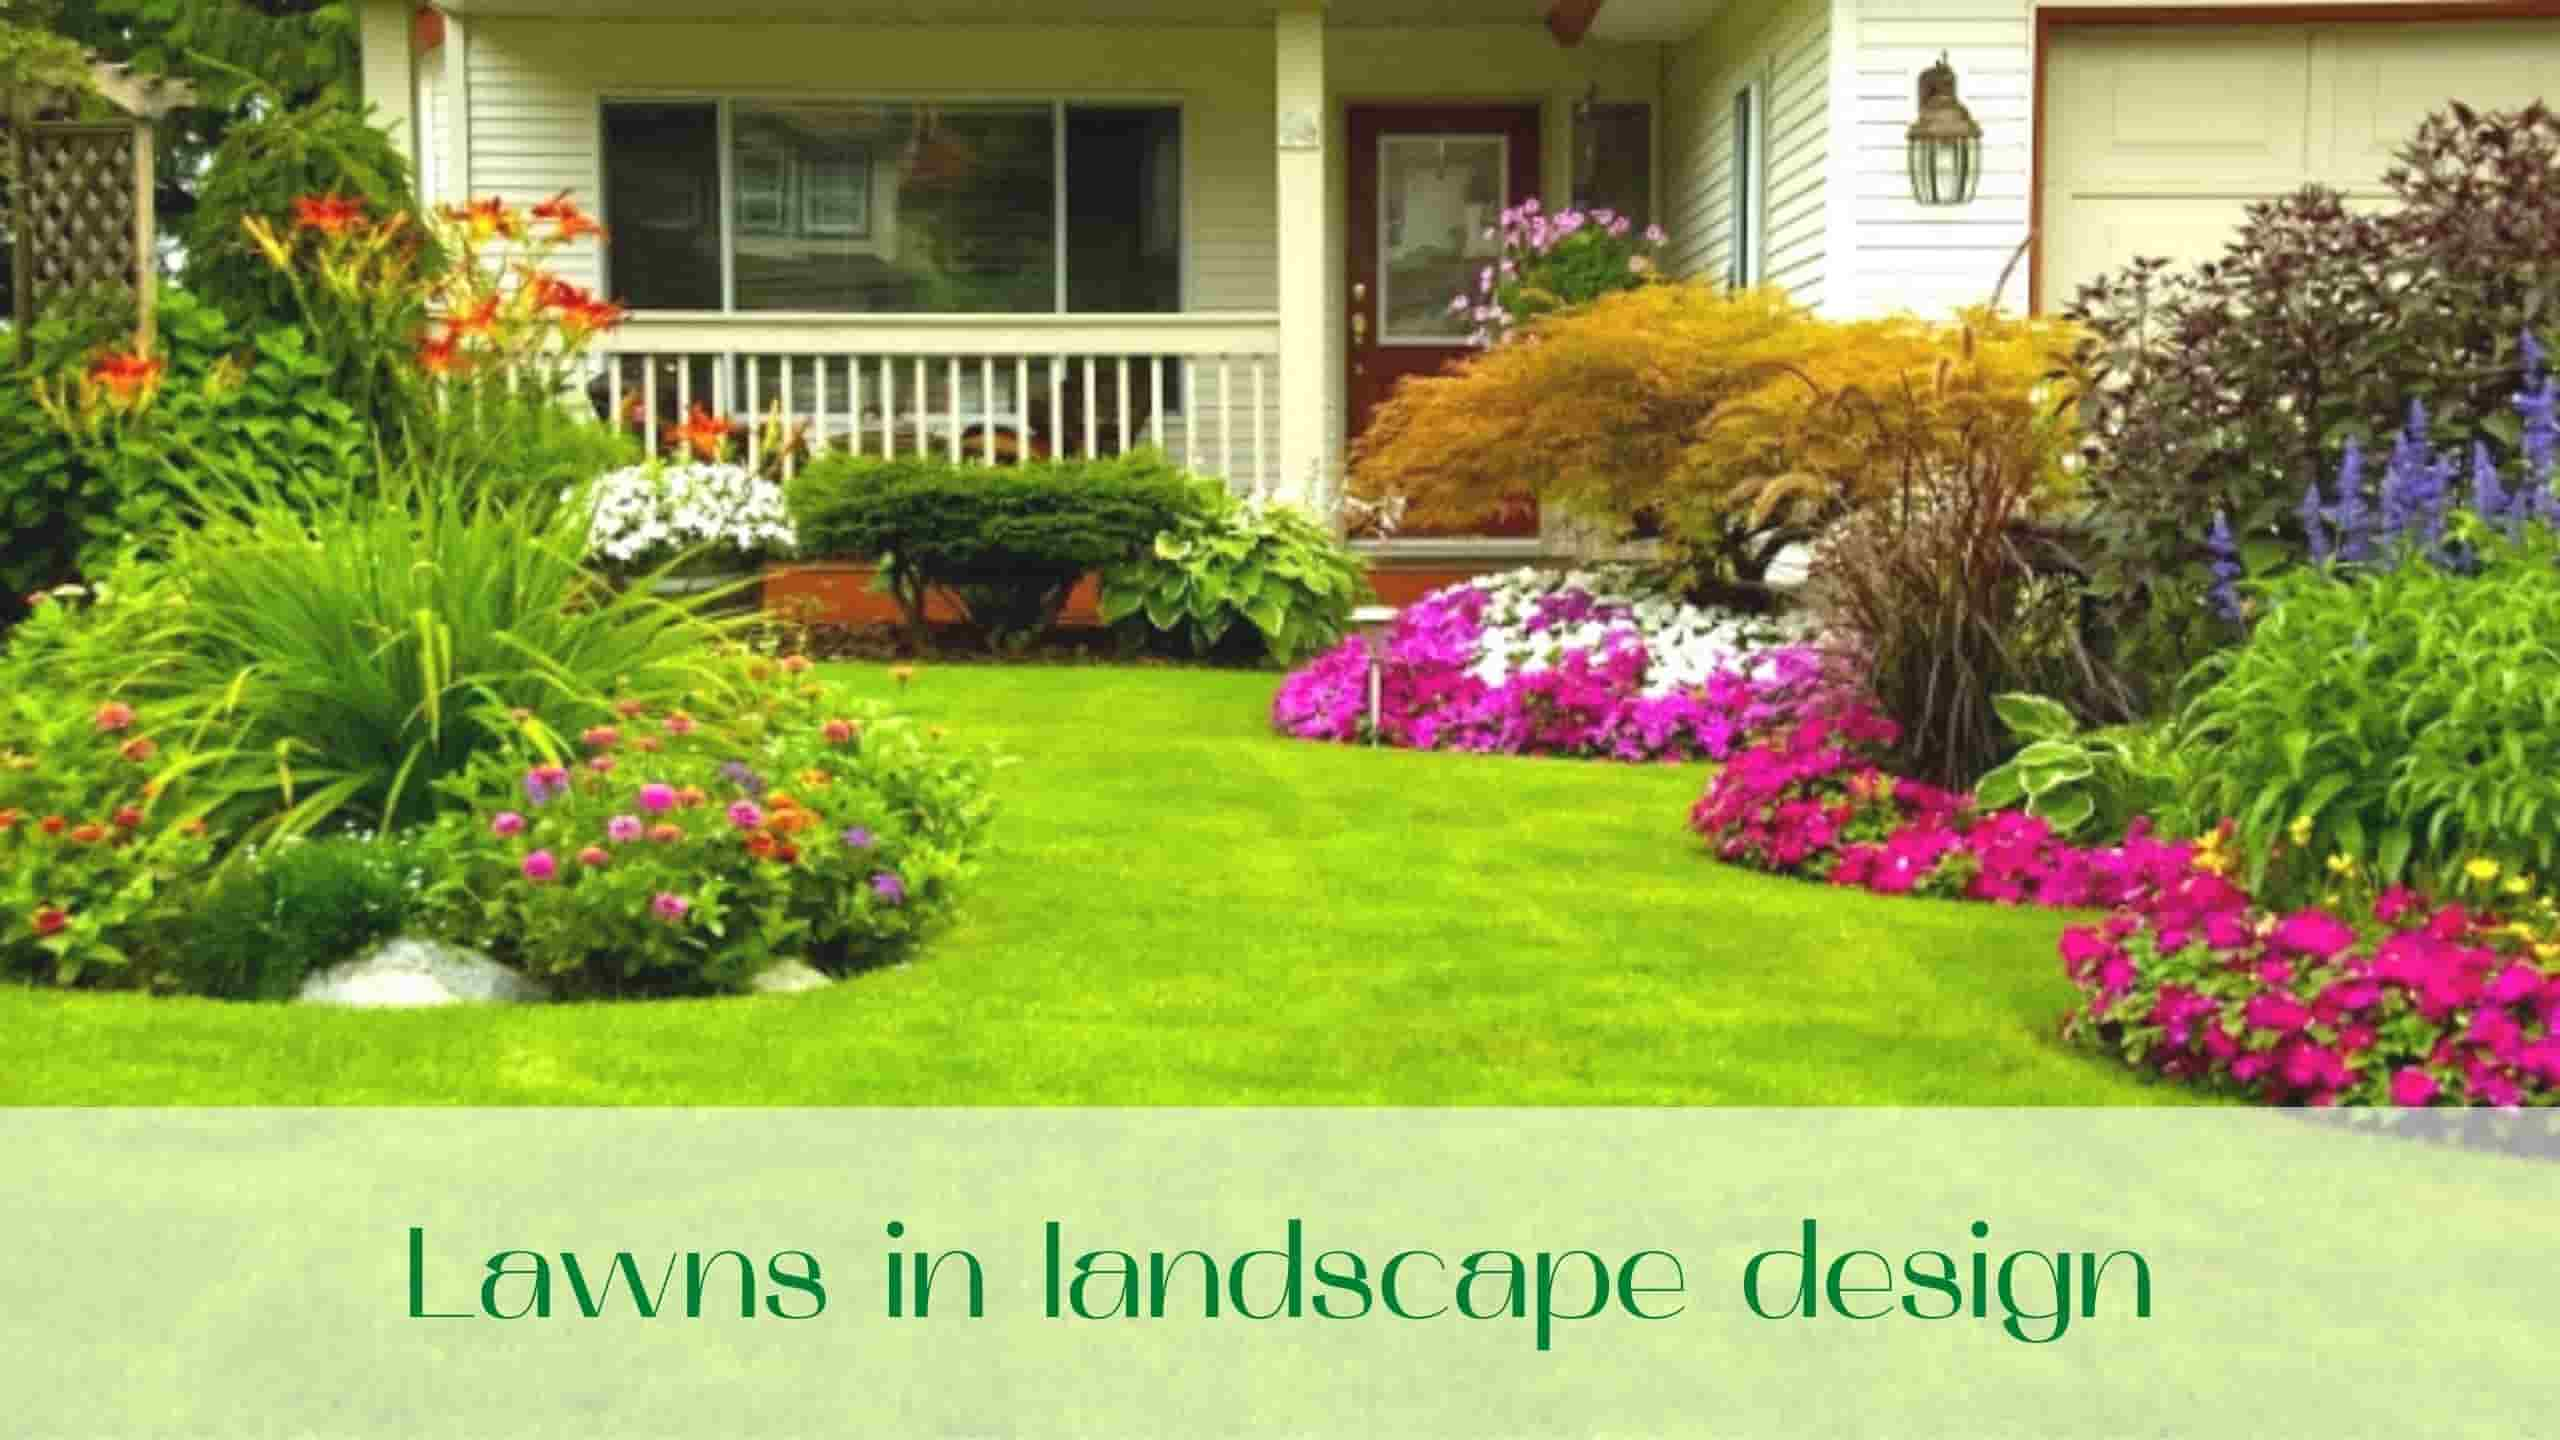 image-Lawns-in-landscape-design-in-Ontario